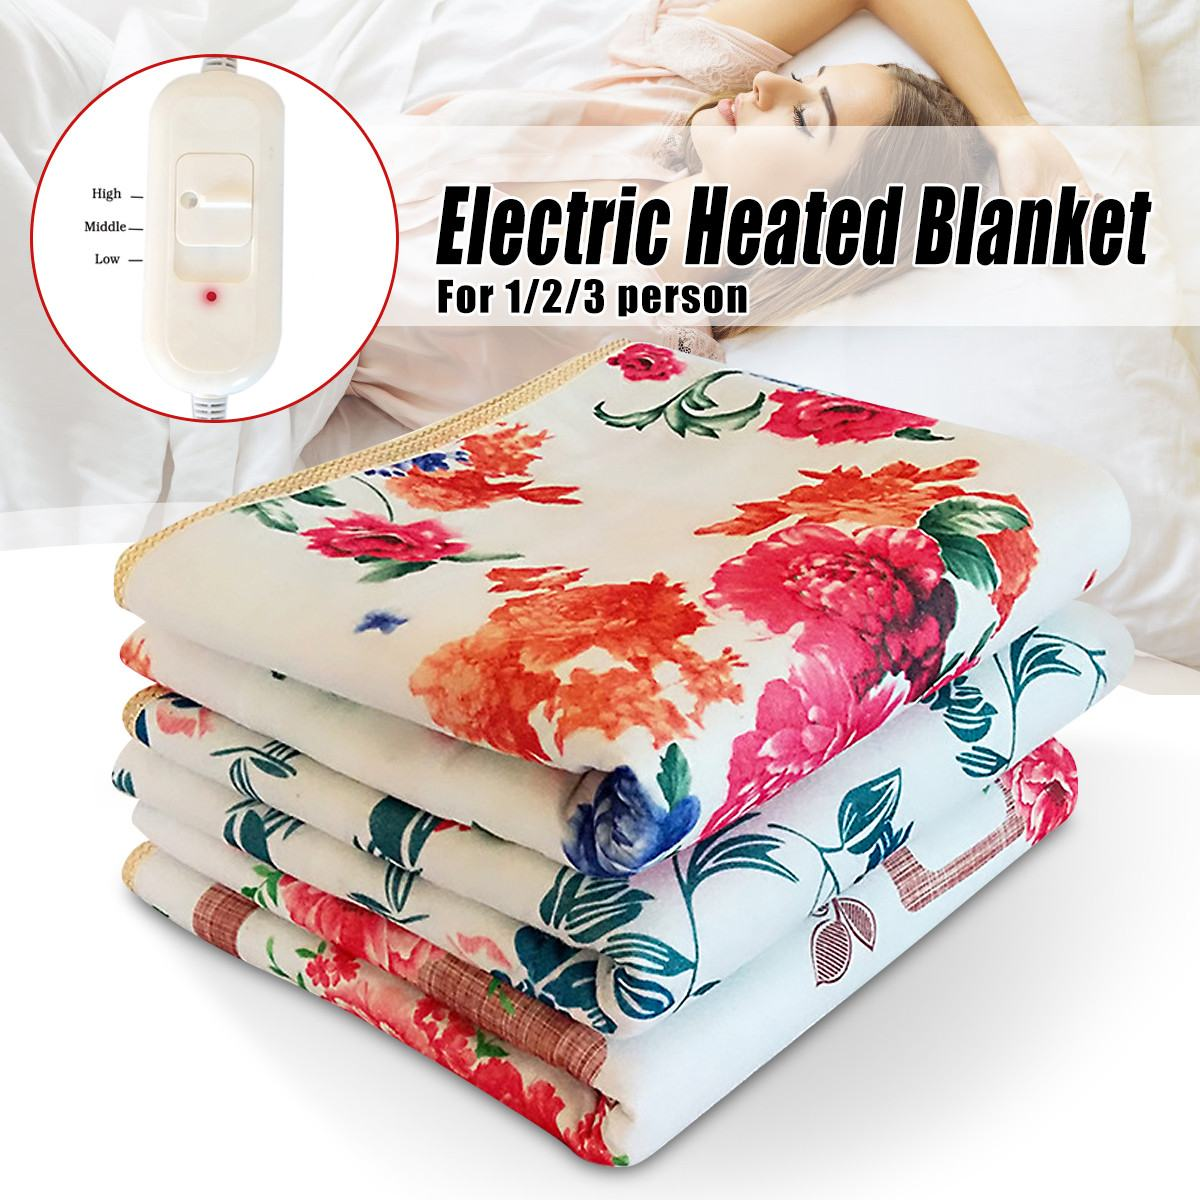 Portable Handy Electric Blanket Easy Convenient Bedroom Heater Electric Heater Blanket For Body Bed Warmer Electric Handy Heater